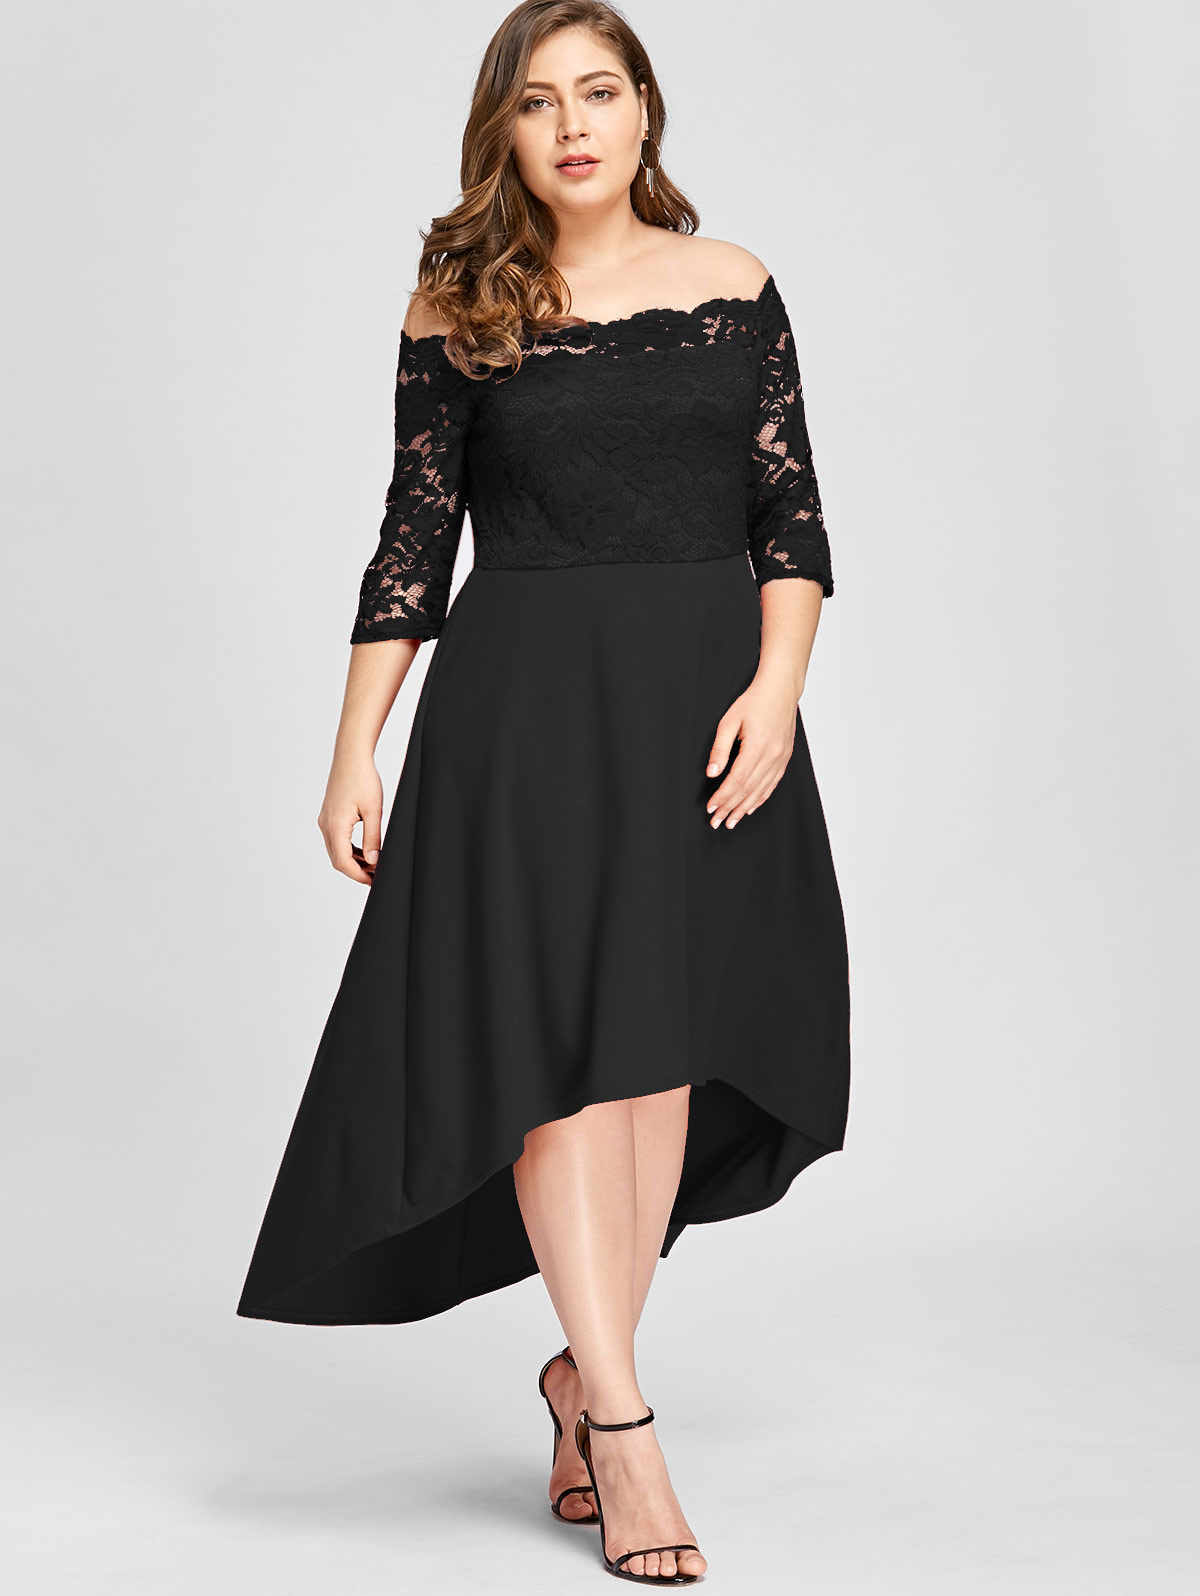 8b42bf59a5d67 ... Wipalo Women Party Dress Plus Size Off Shoulder Dip Hem Lace 3 4 Length  Sleeves ...